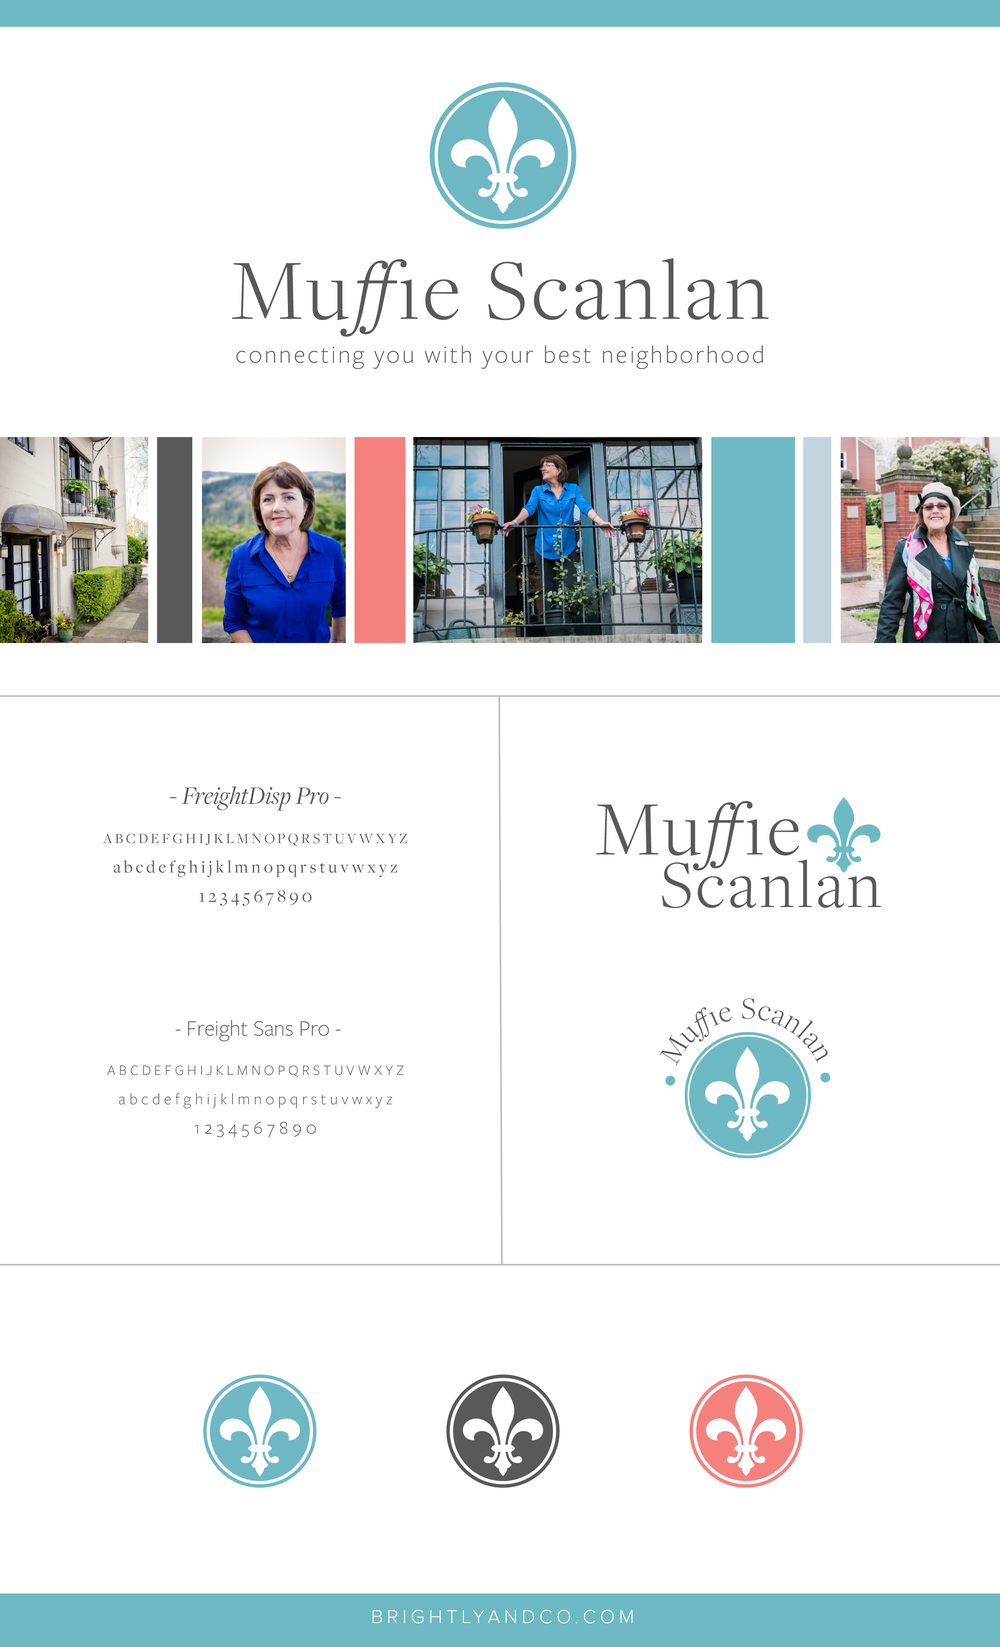 Brand Board for Muffie Scanlan, created by Brightly & Co.